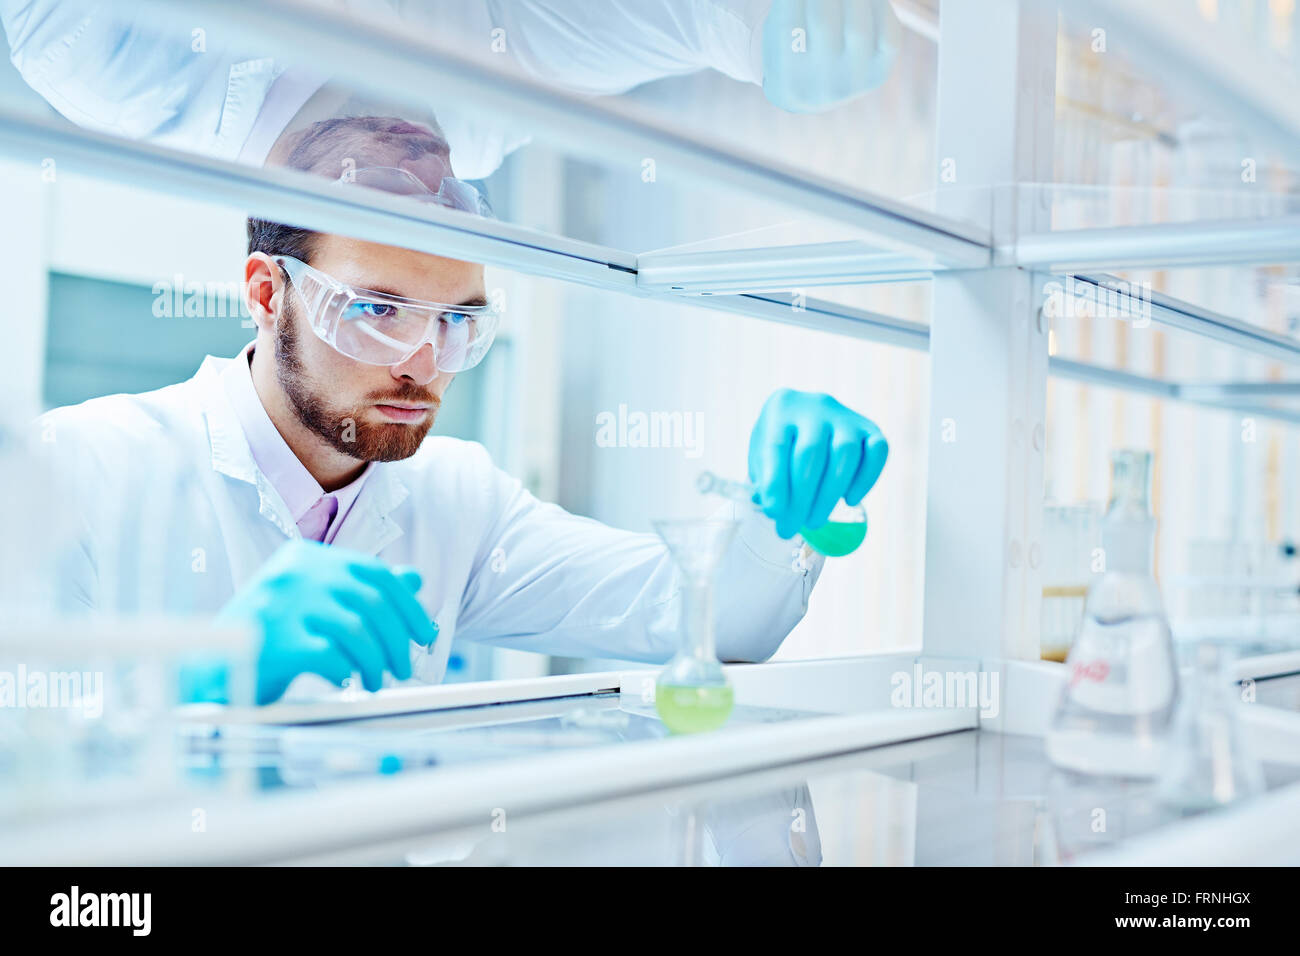 Scientific experiment Stock Photo, Royalty Free Image: 100663722 ...